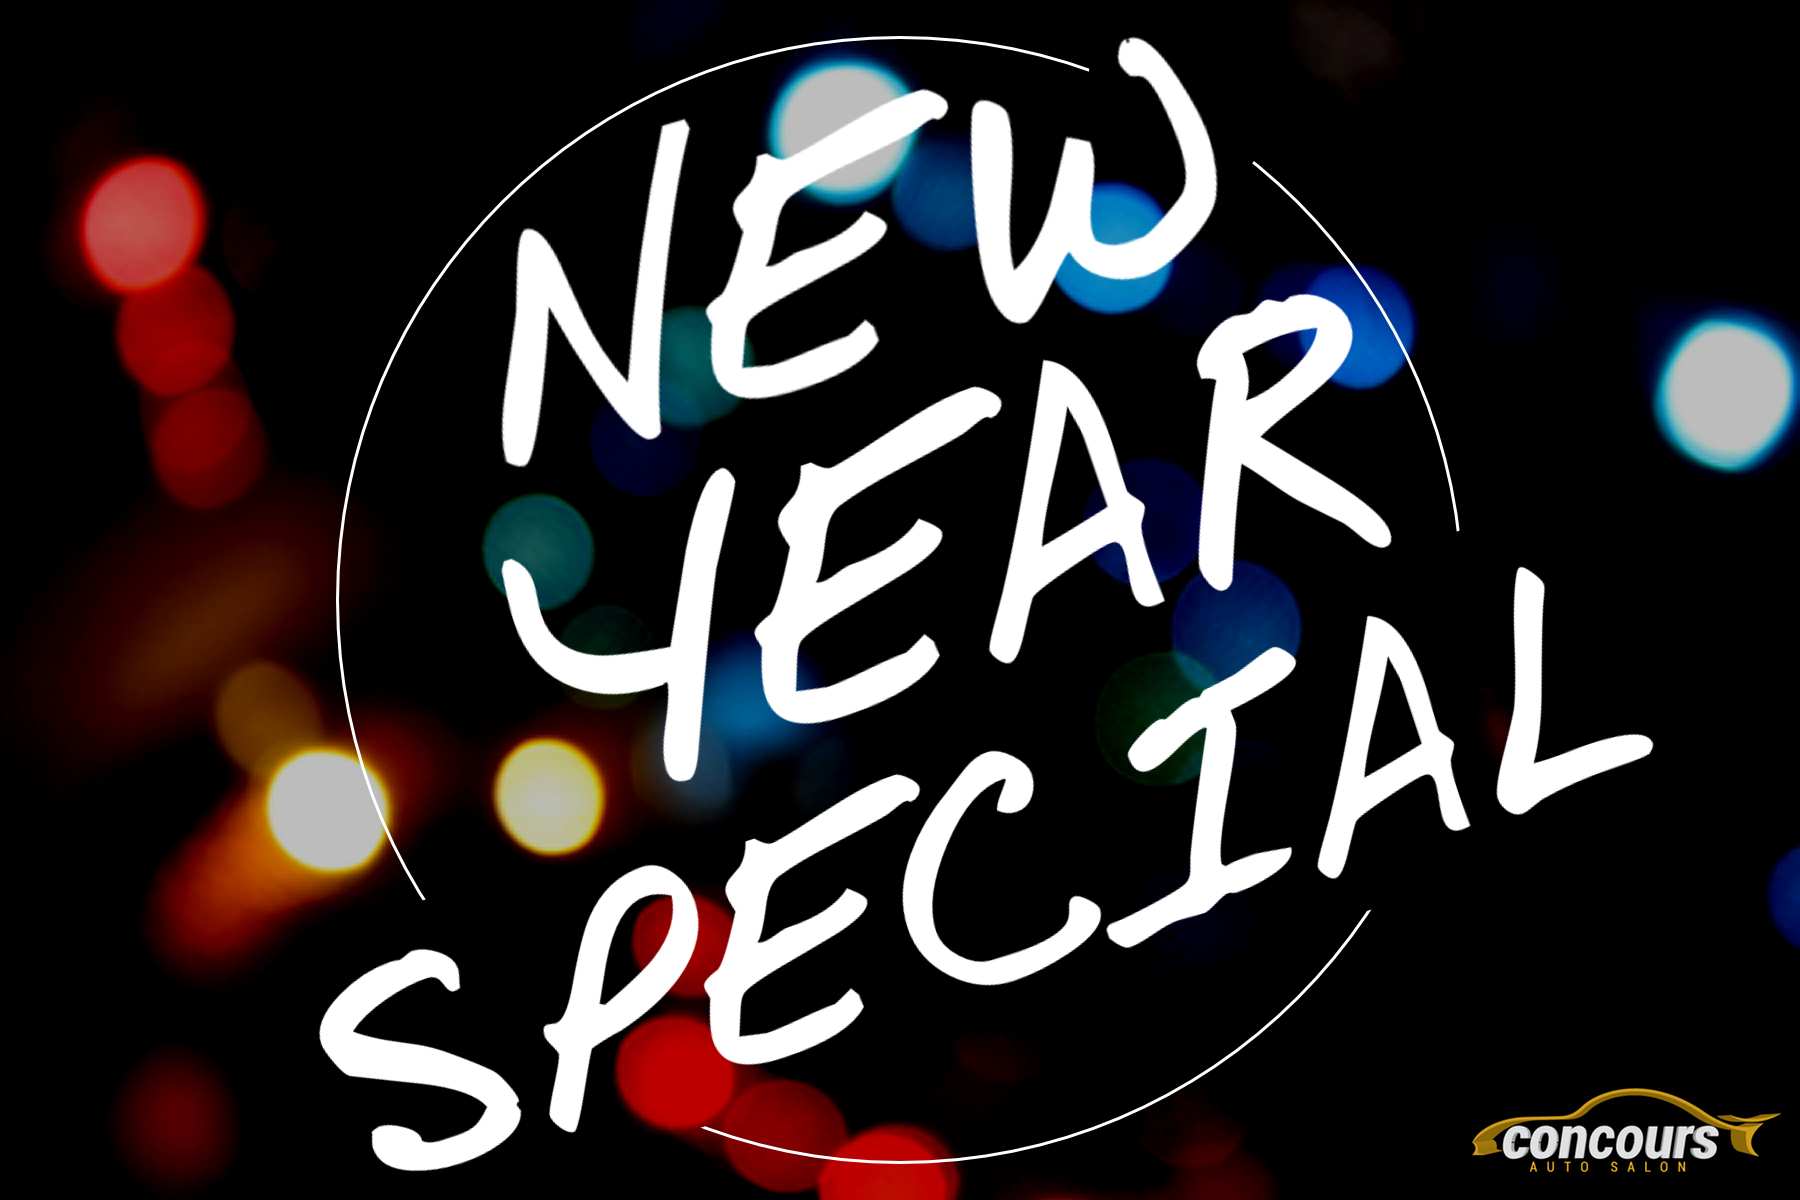 Concours Auto Salon New Year Special